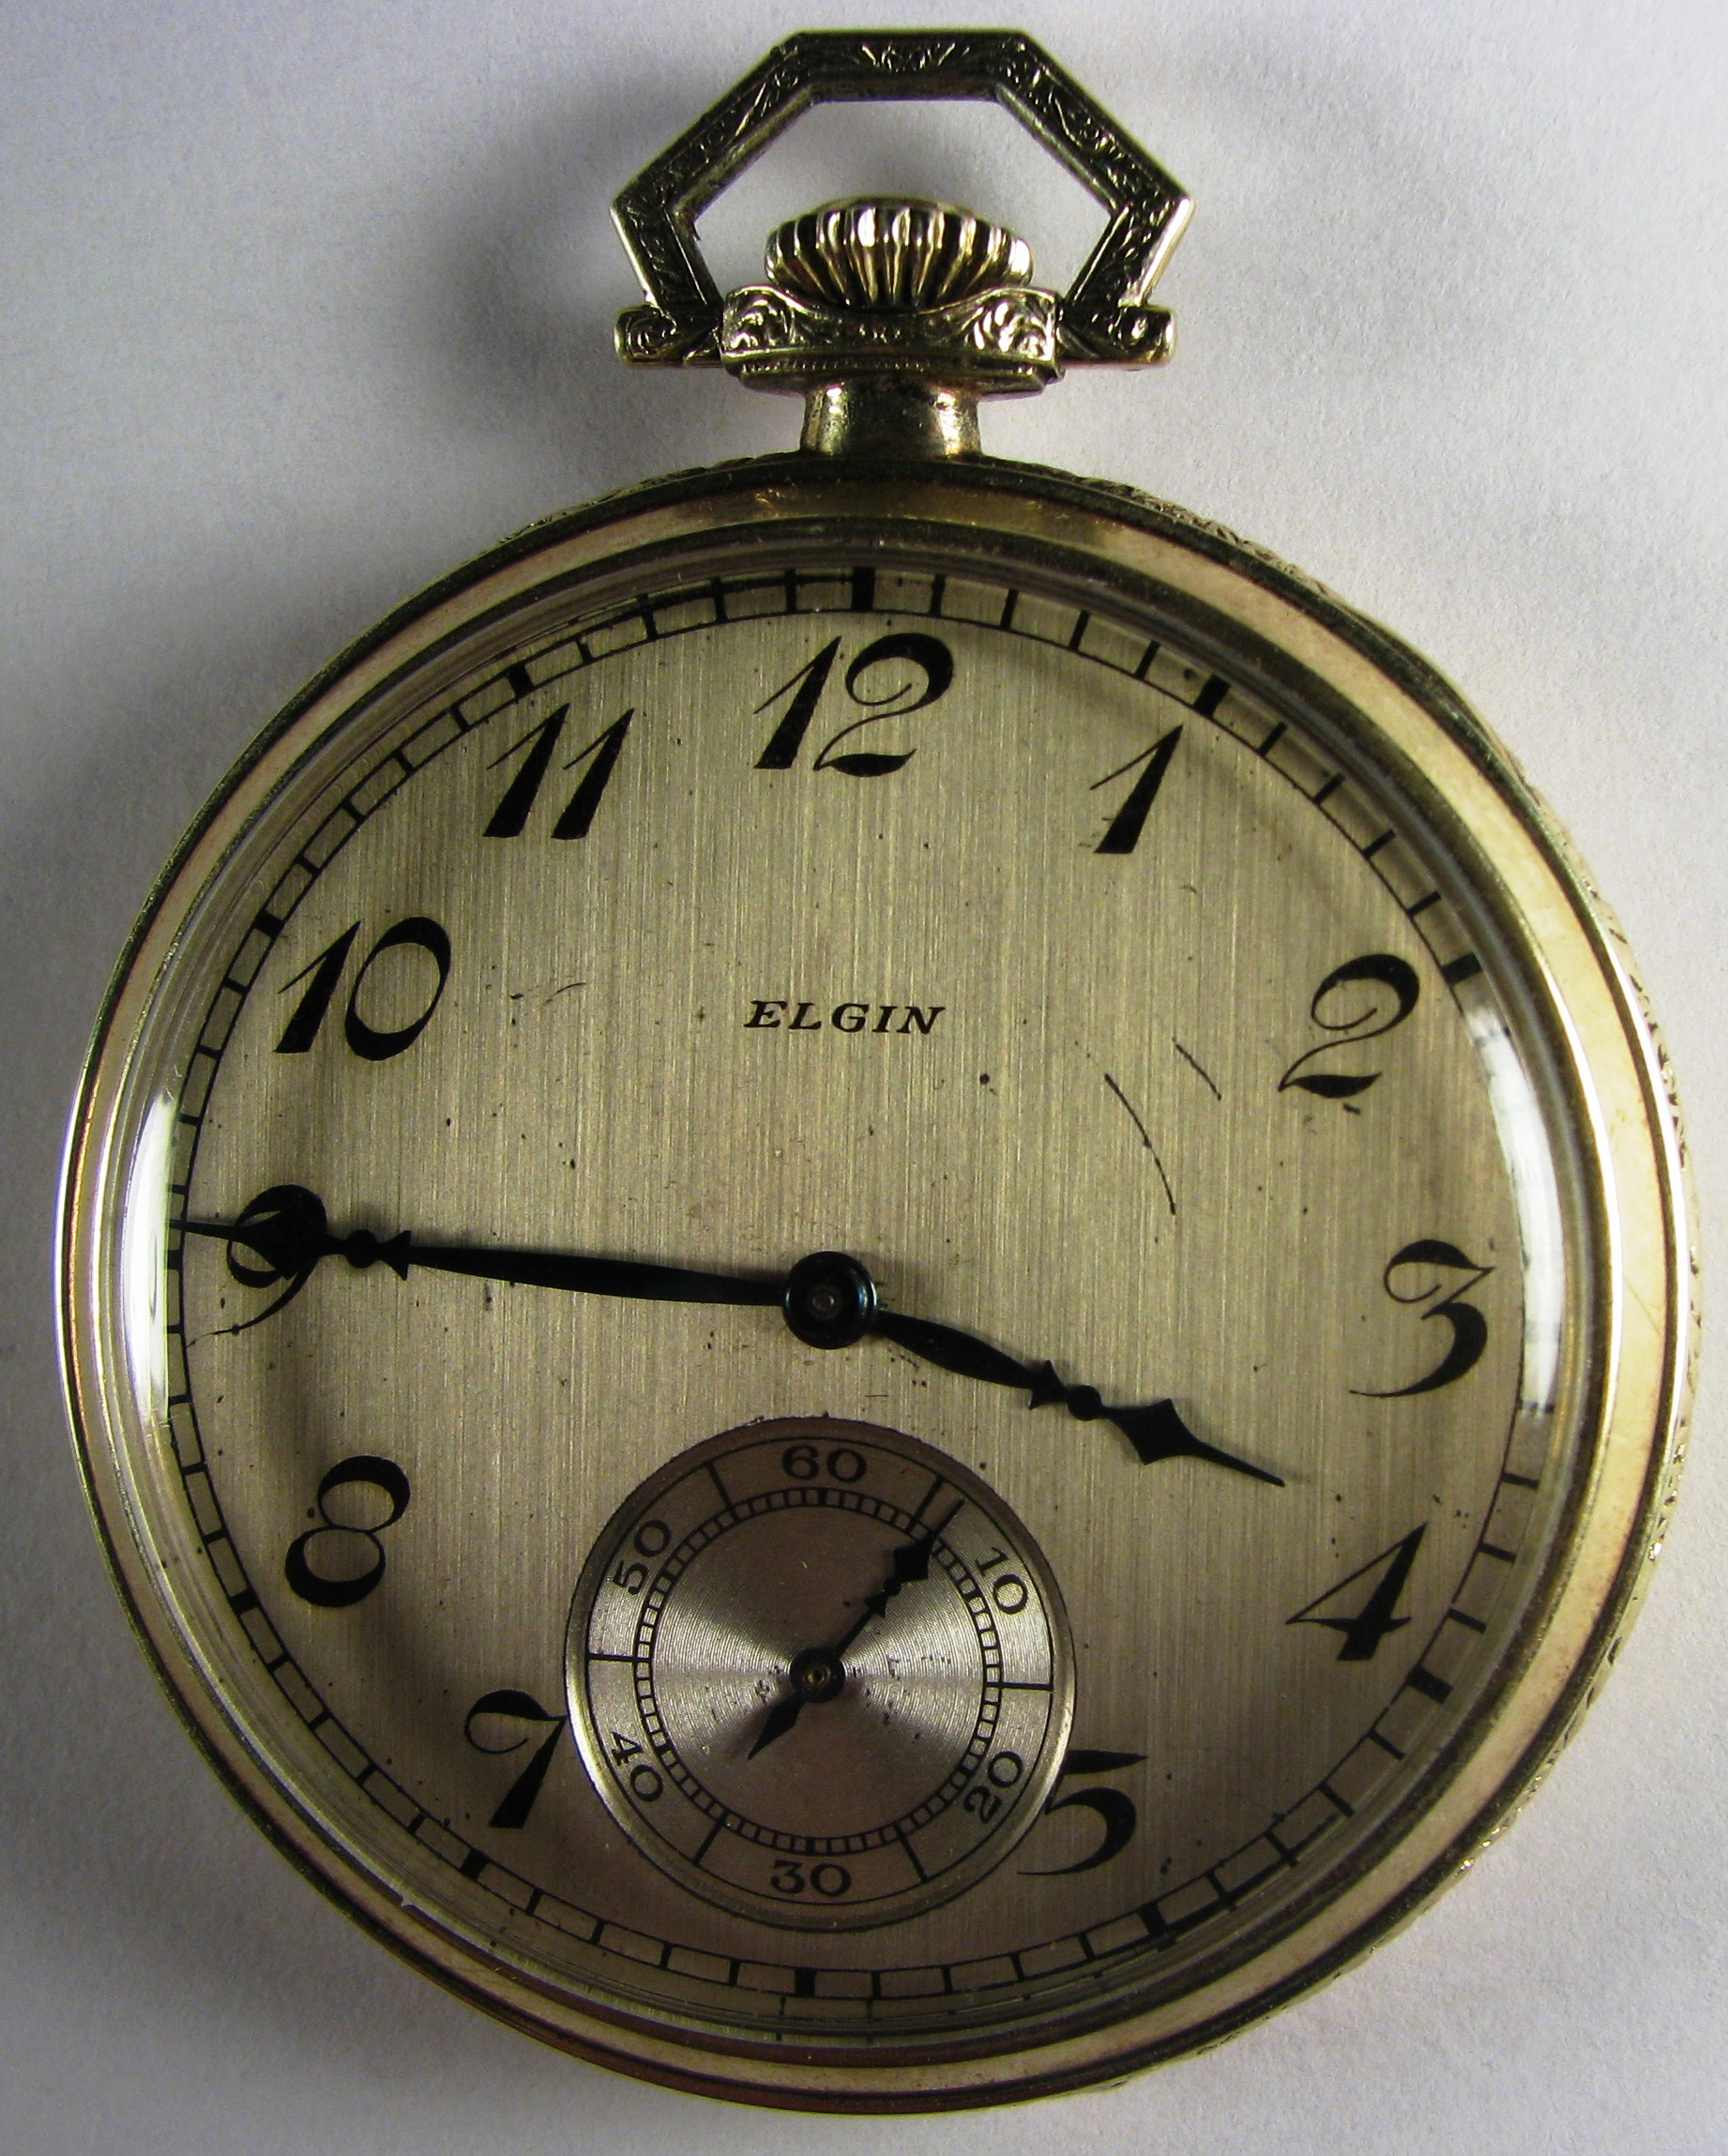 value of my 1924 14 kt gold elgin pocket watc the